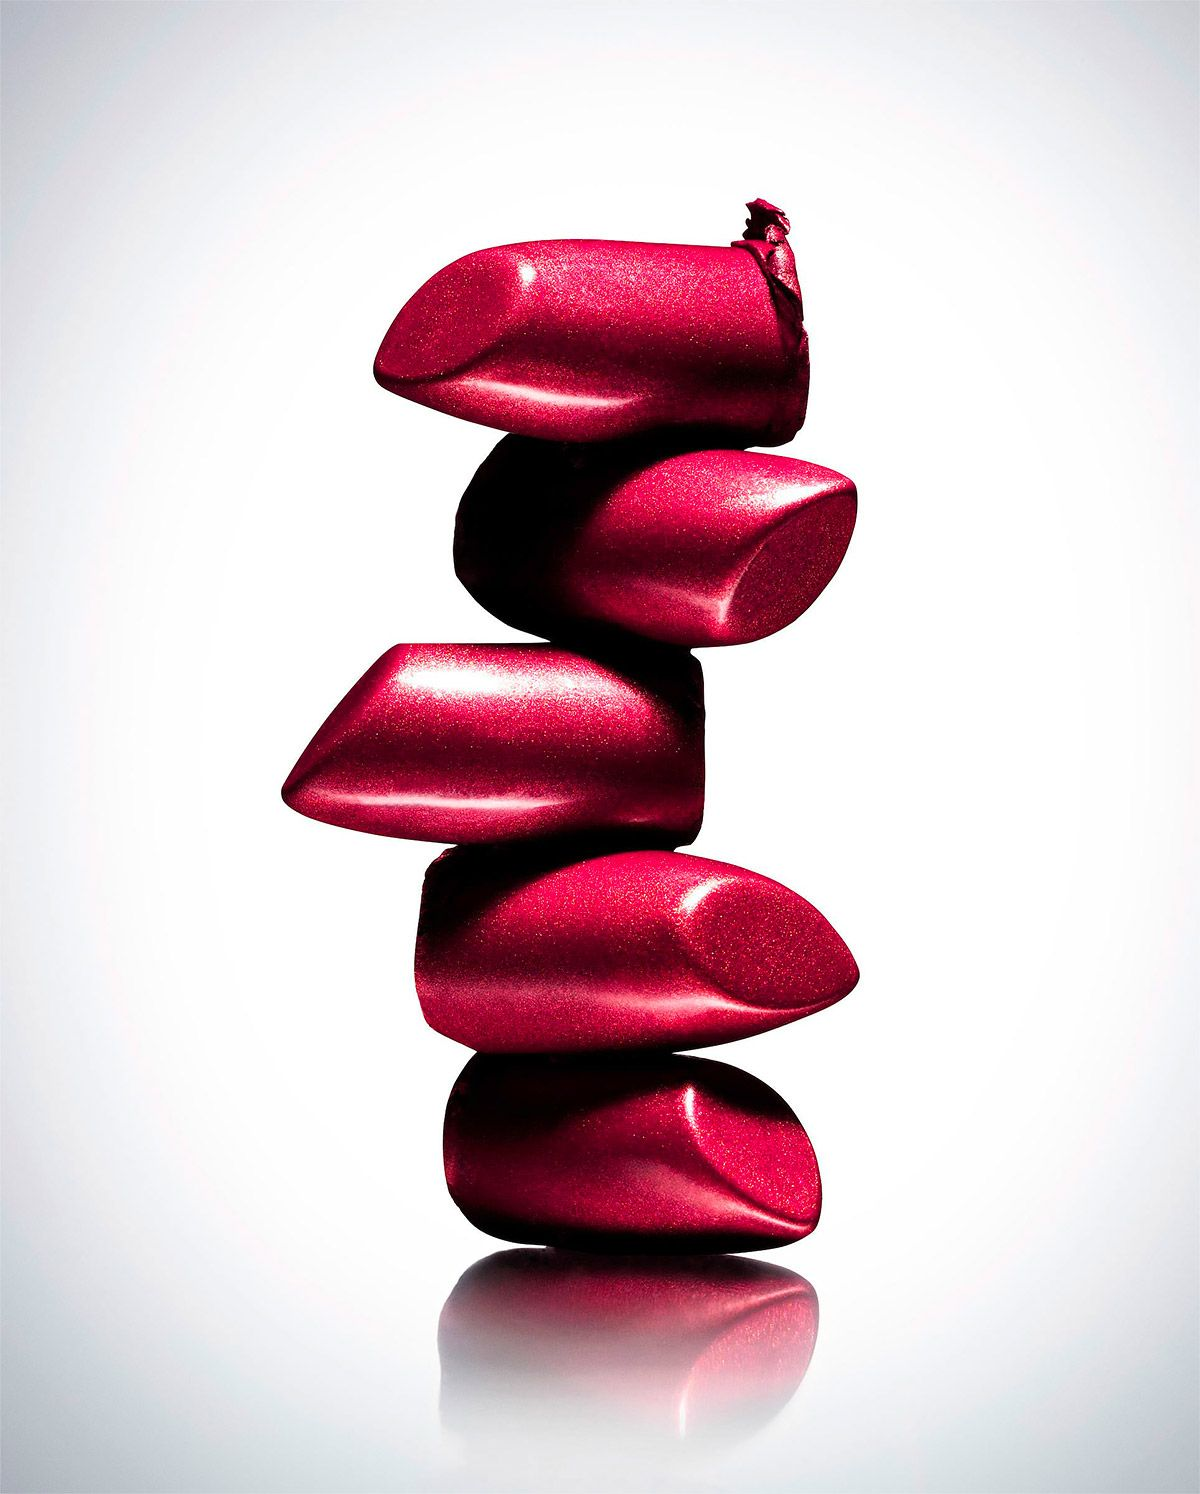 creative lipstick photography by daniel lindh